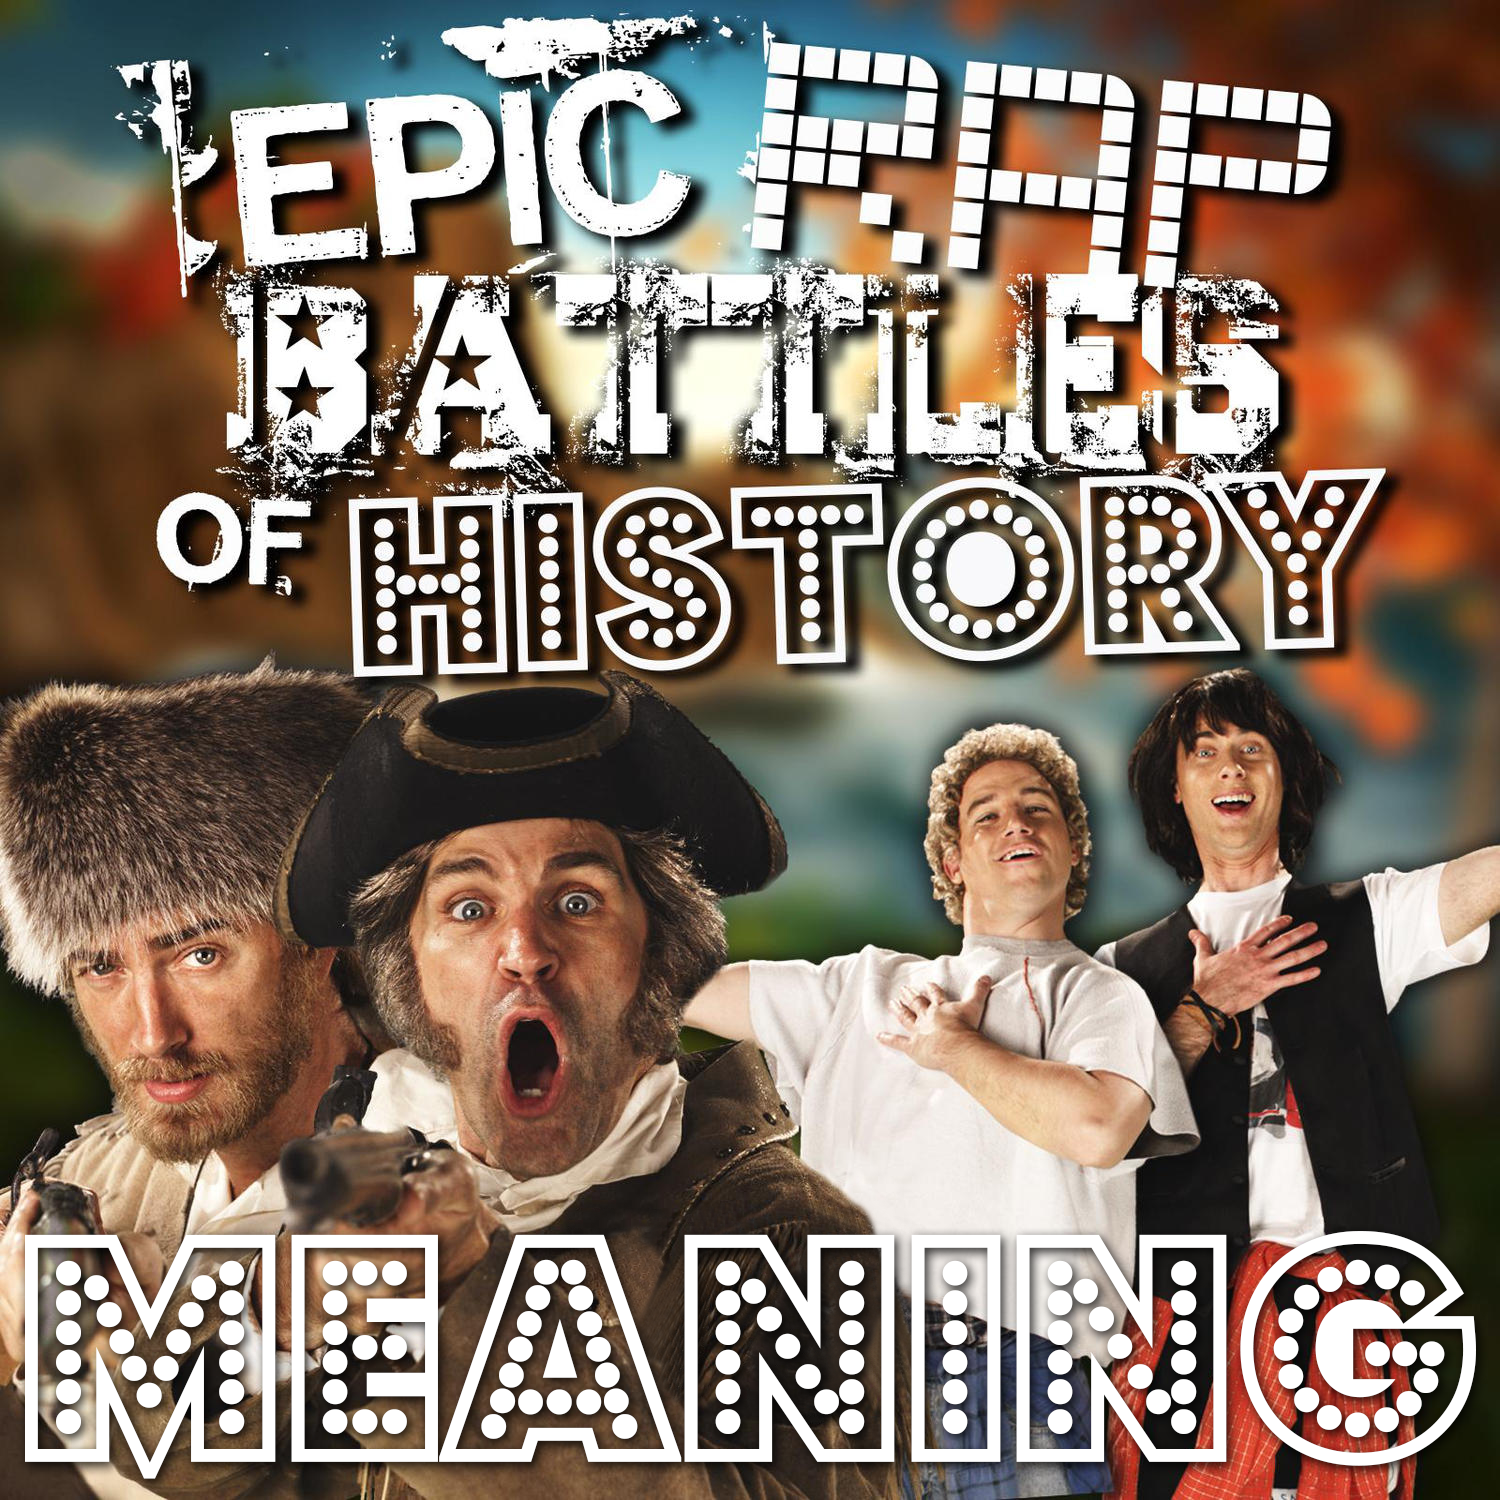 Lewis and Clark vs Bill and Ted/Rap Meanings